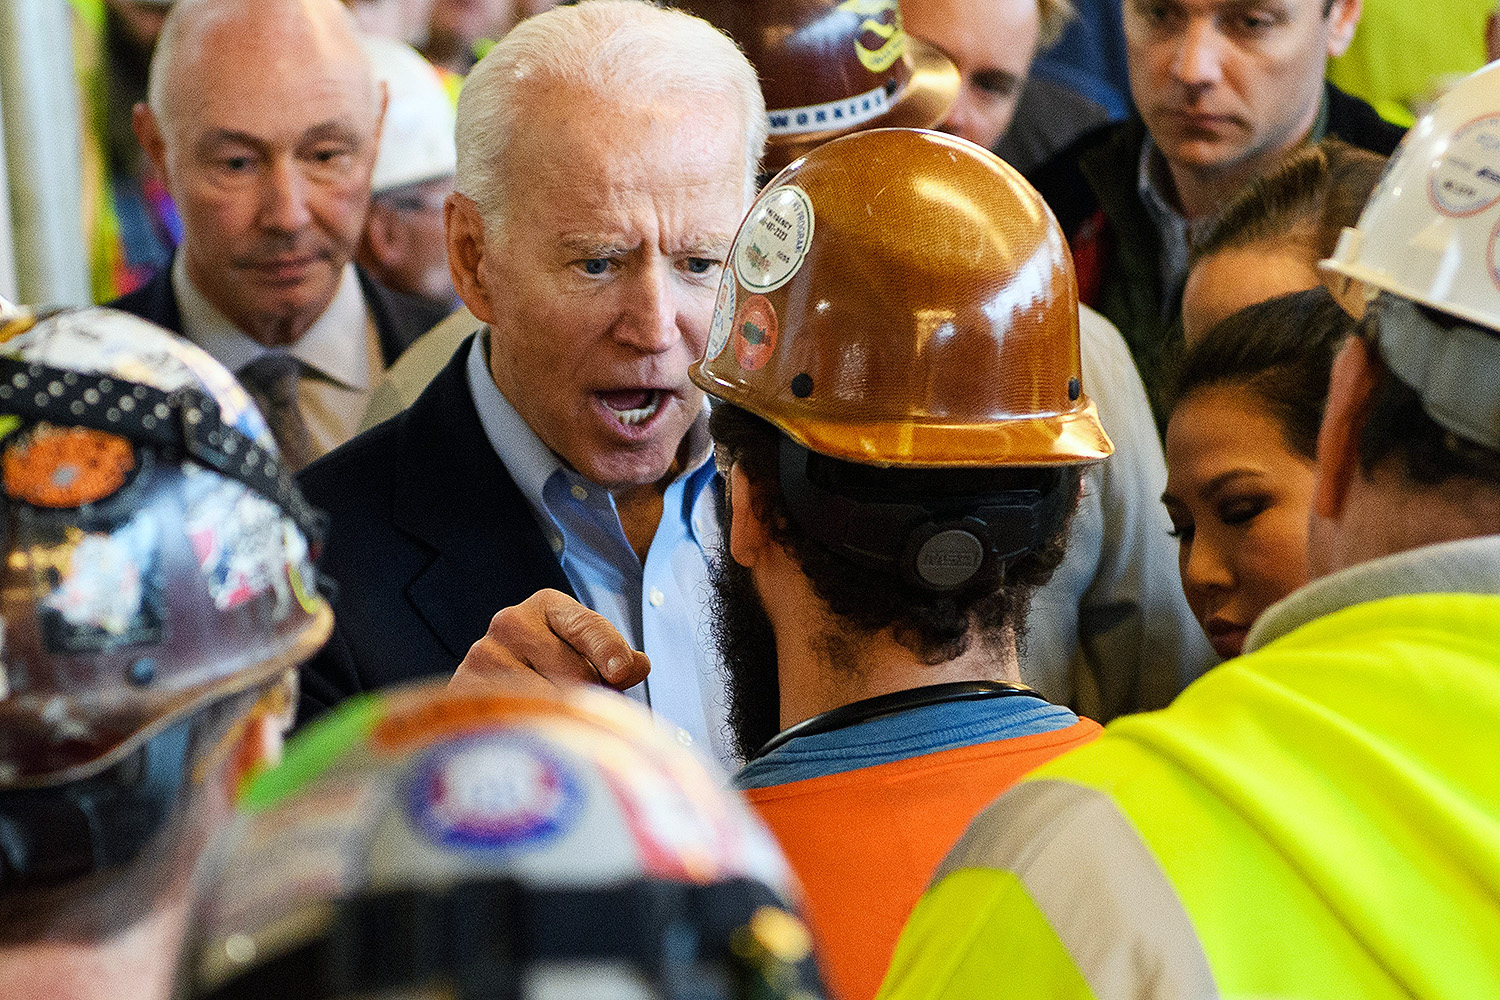 "U.S. Democratic presidential candidate Joe Biden has a heated exchange with a worker over gun control while touring the Fiat Chrysler plant in Detroit on March 10. The worker accused the former vice president of seeking to weaken the constitutional right to own firearms. ""You're full of shit,"" Biden shot back. ""I support the Second Amendment."" MANDEL NGAN/AFP via Getty Images"